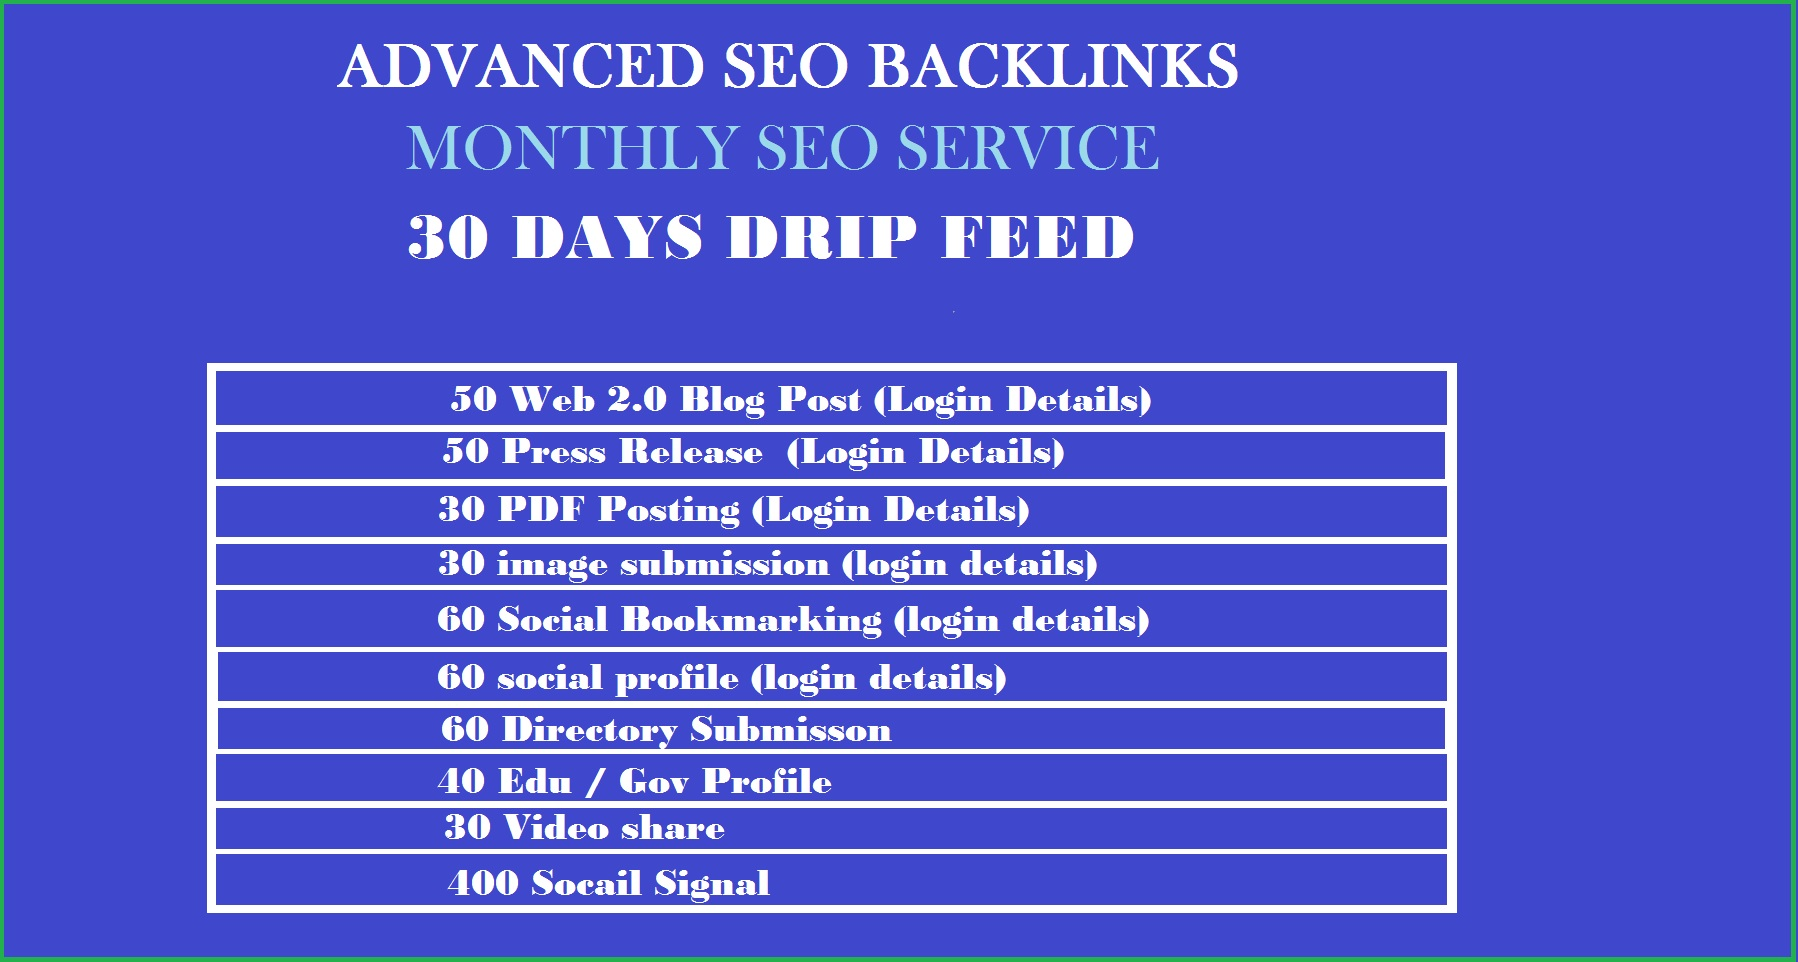 I will do an monthly advanced SEO backlinks to improve google ranking